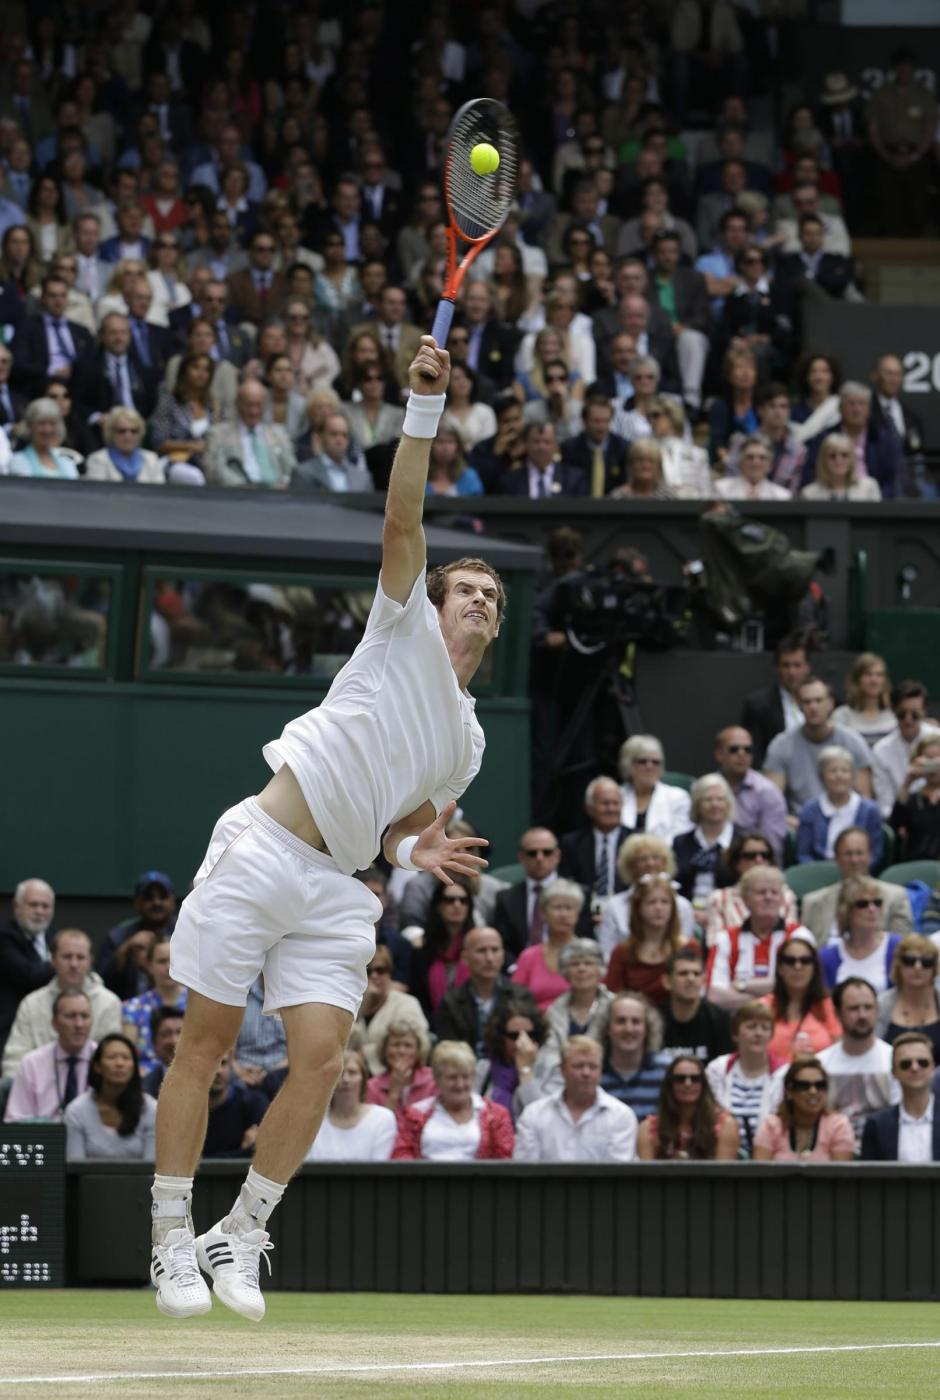 """roger federer essay In david foster wallace's famous essay """"roger federer as religious experience """", to which skidelsky refers several times, wallace claims that."""